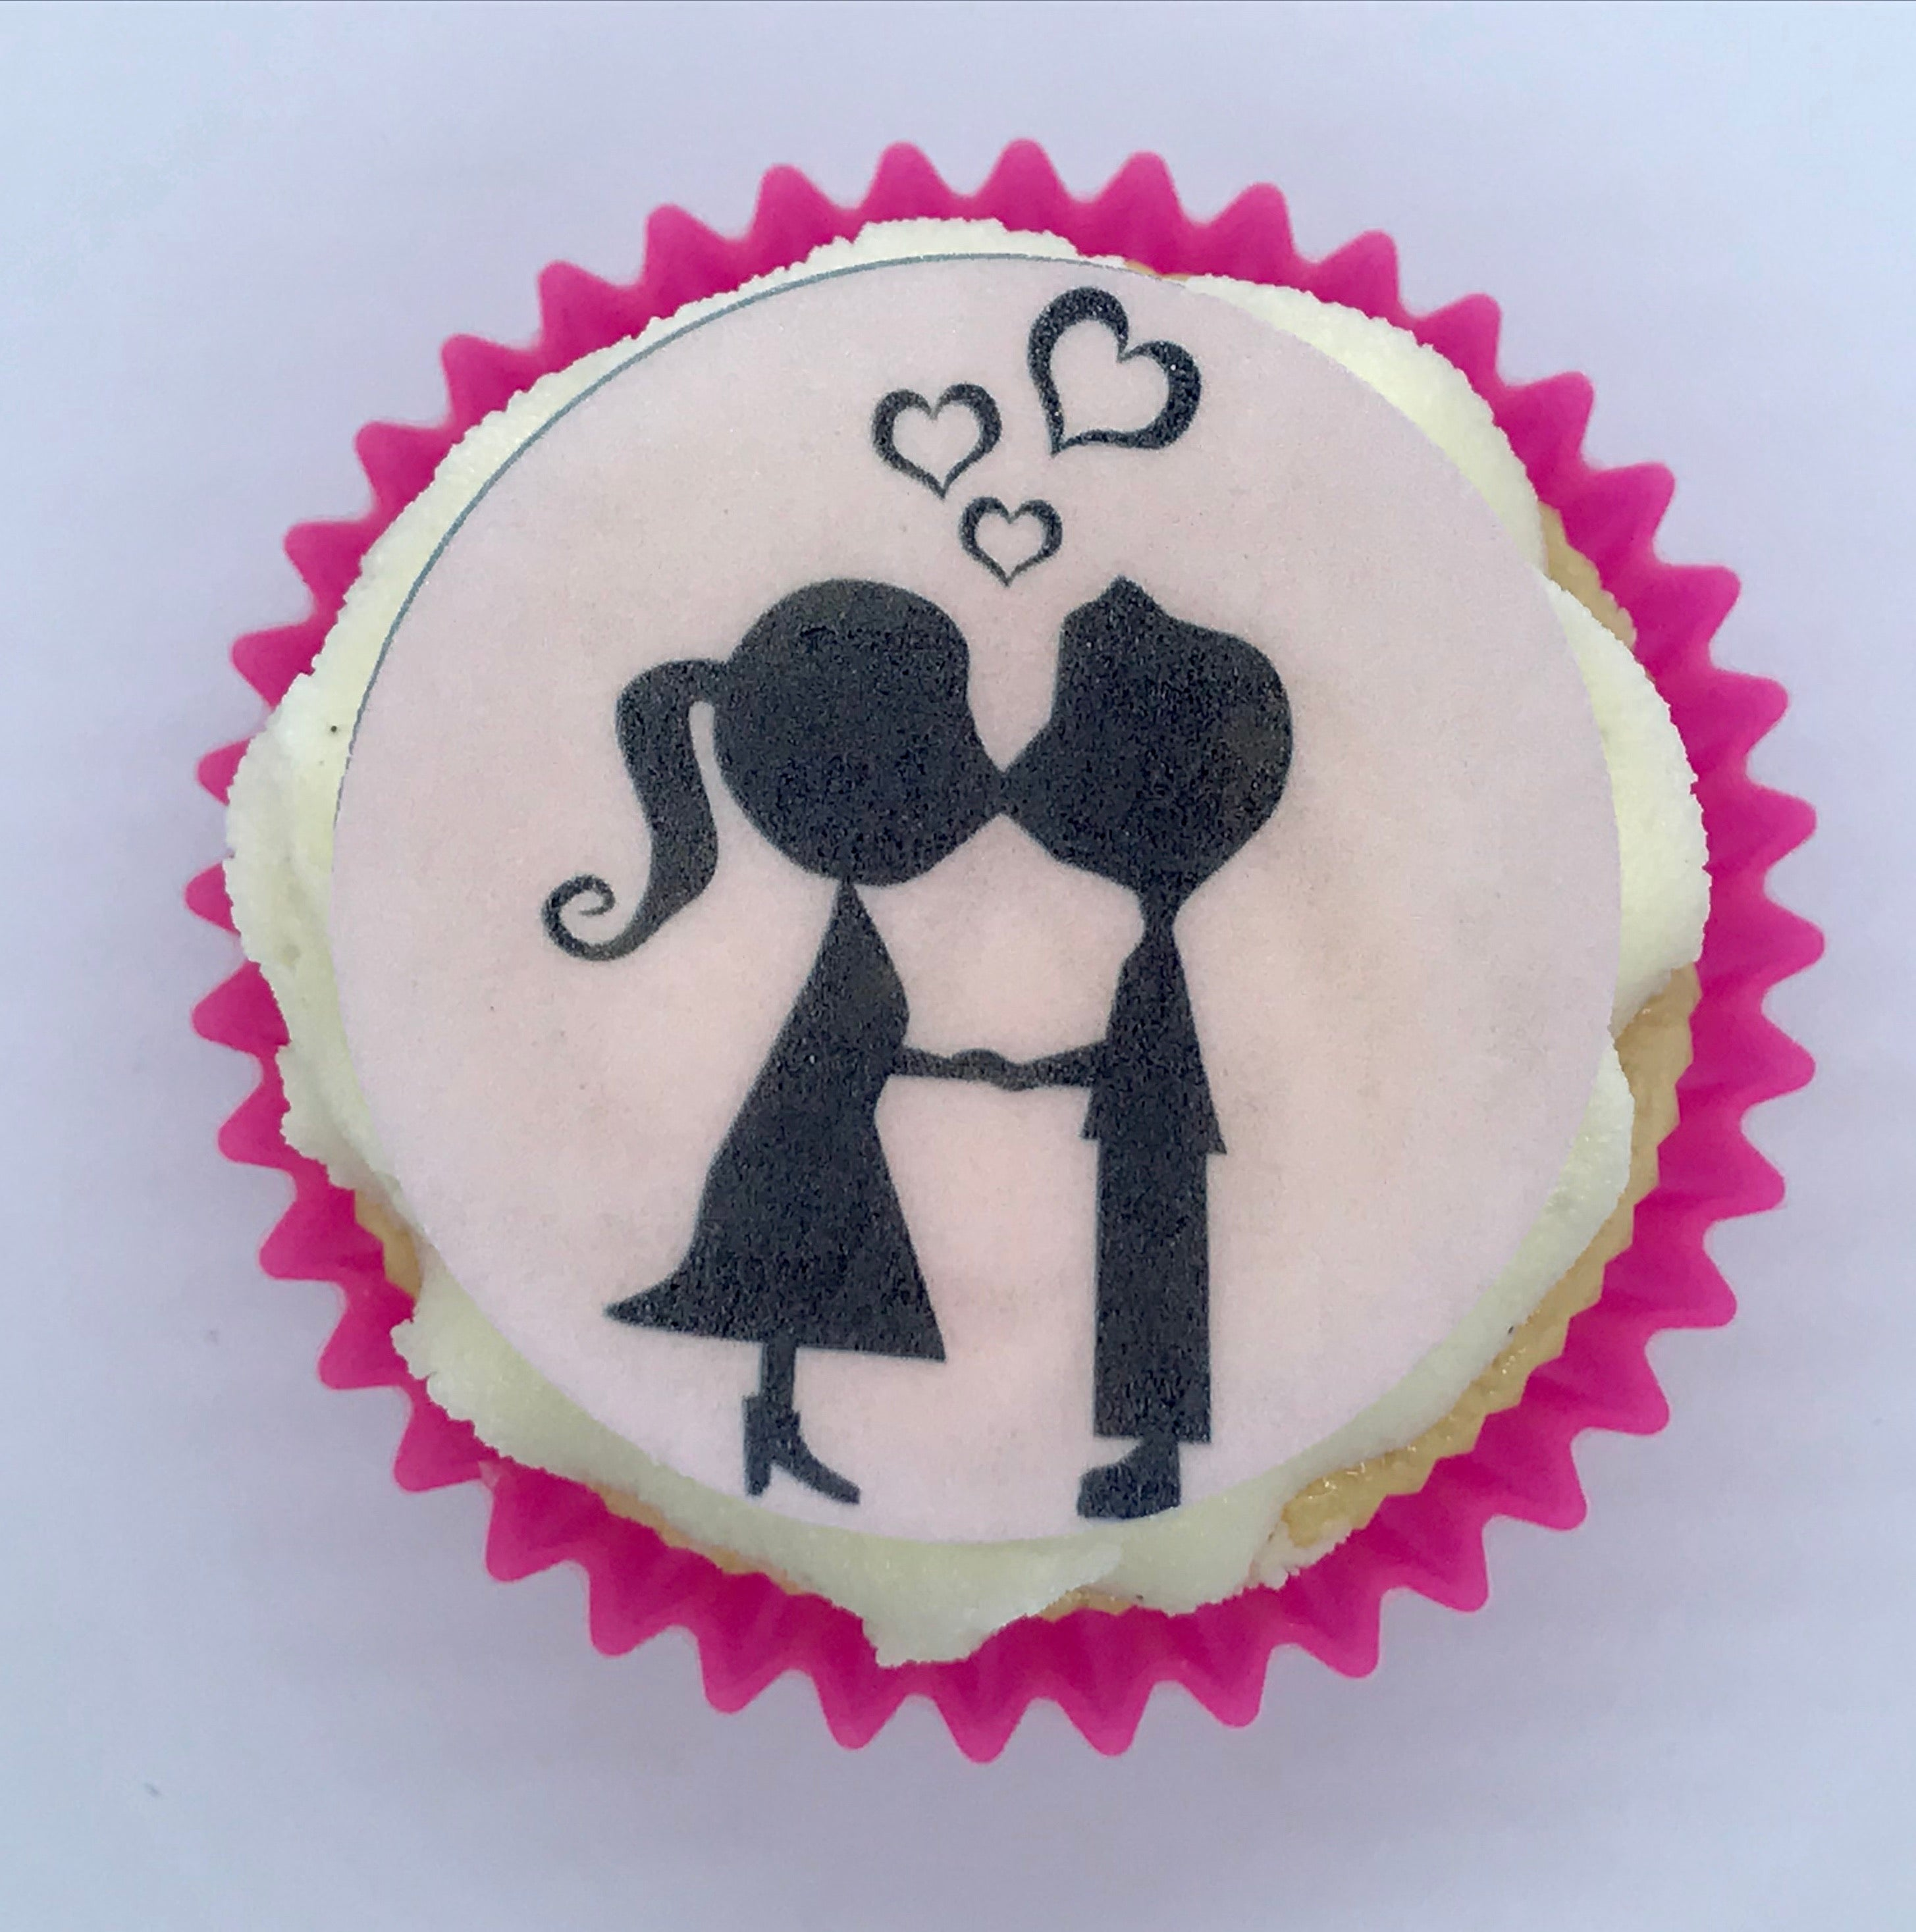 Kissing Couple Cake & Cupcake Toppers